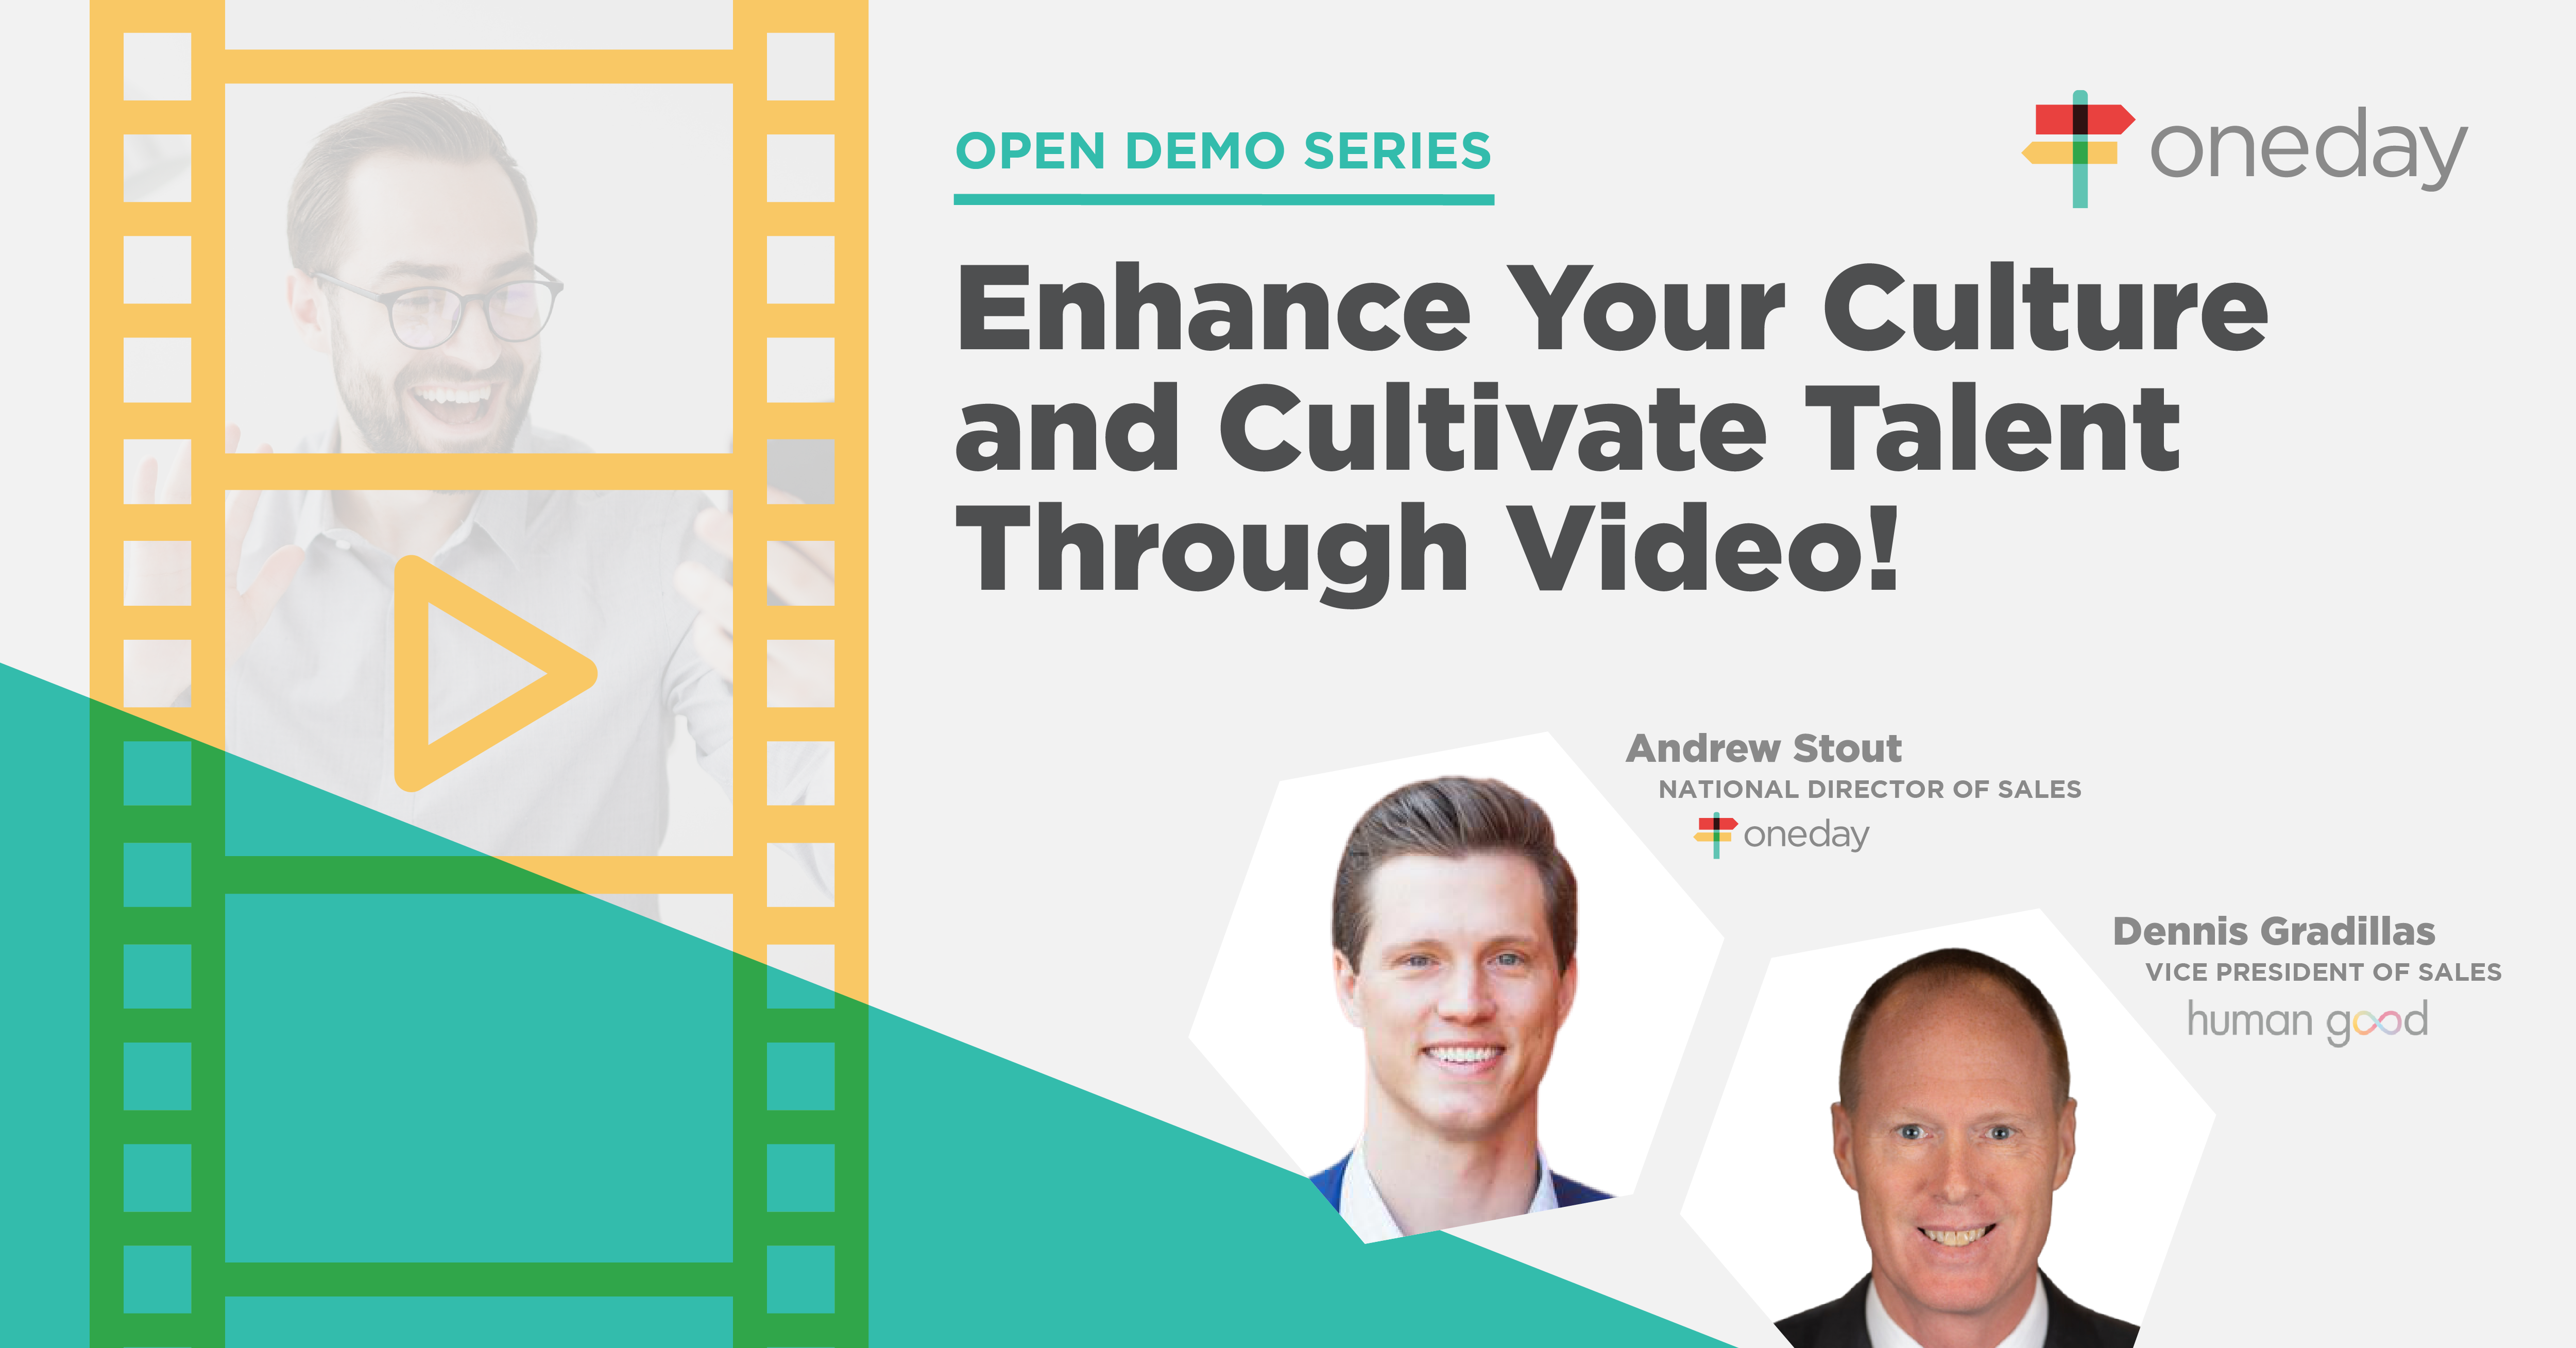 OD-008 Enhance Your Culture Speakers_No Date